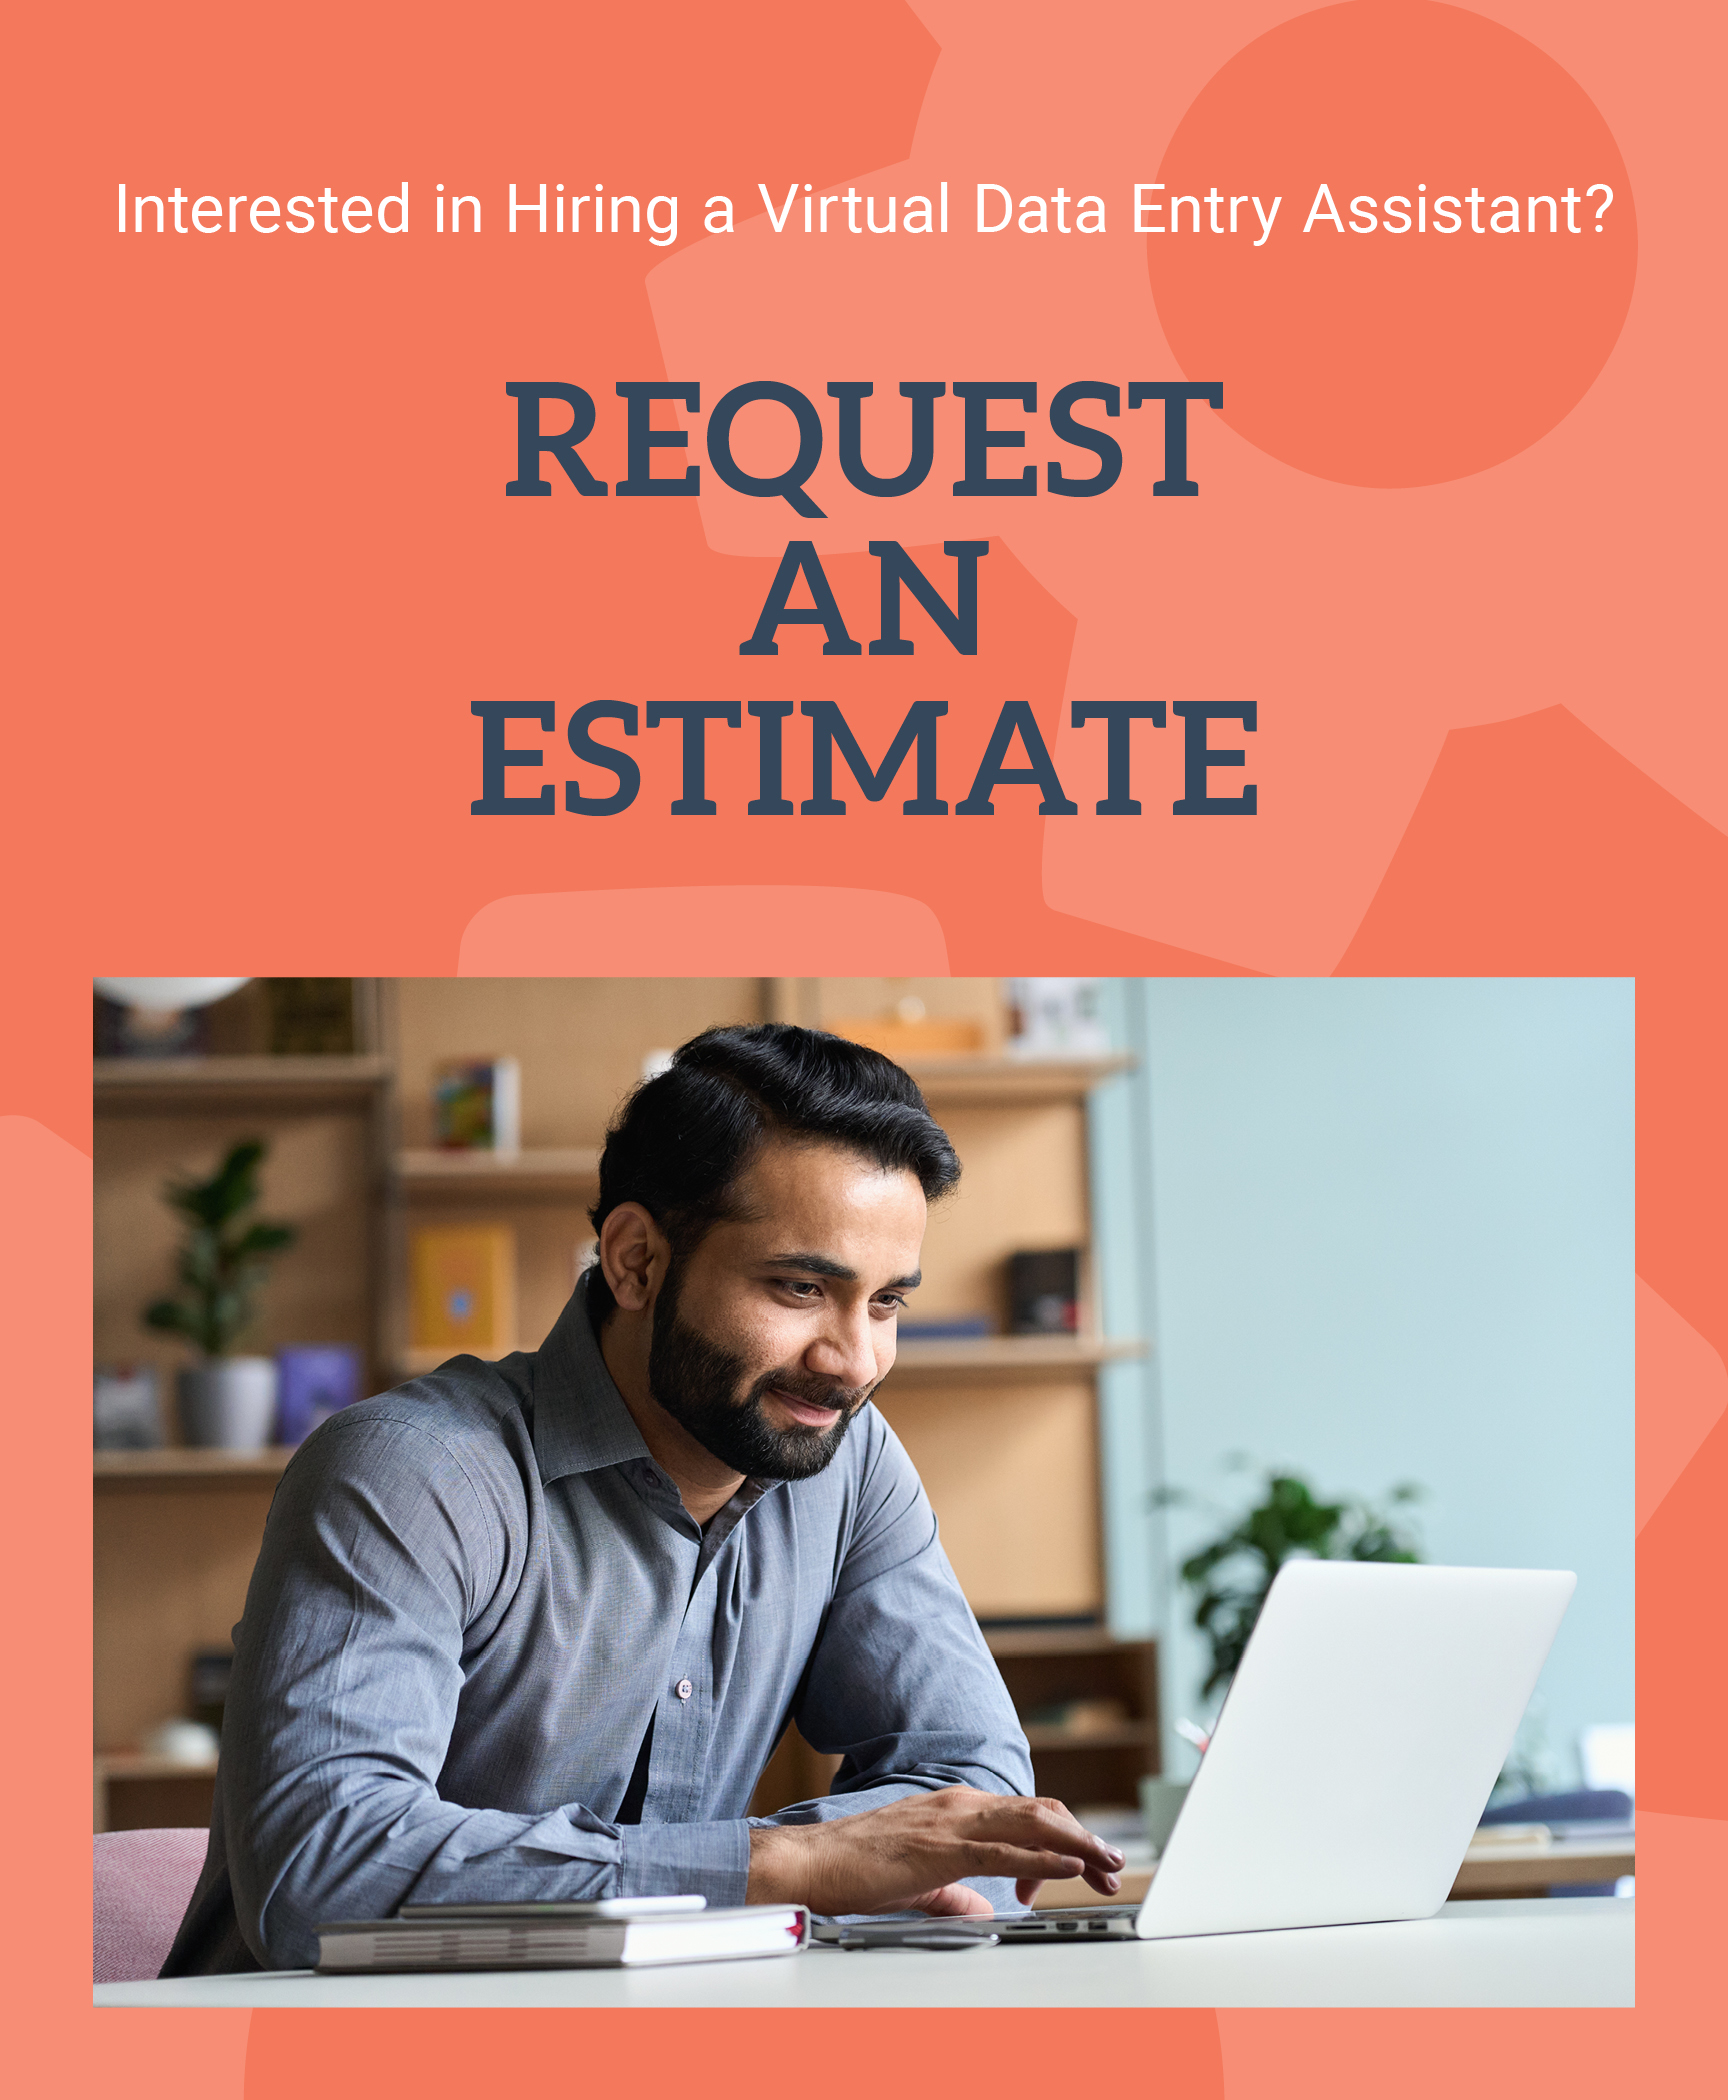 Request an Estimate for a Remote Data Entry Assistant